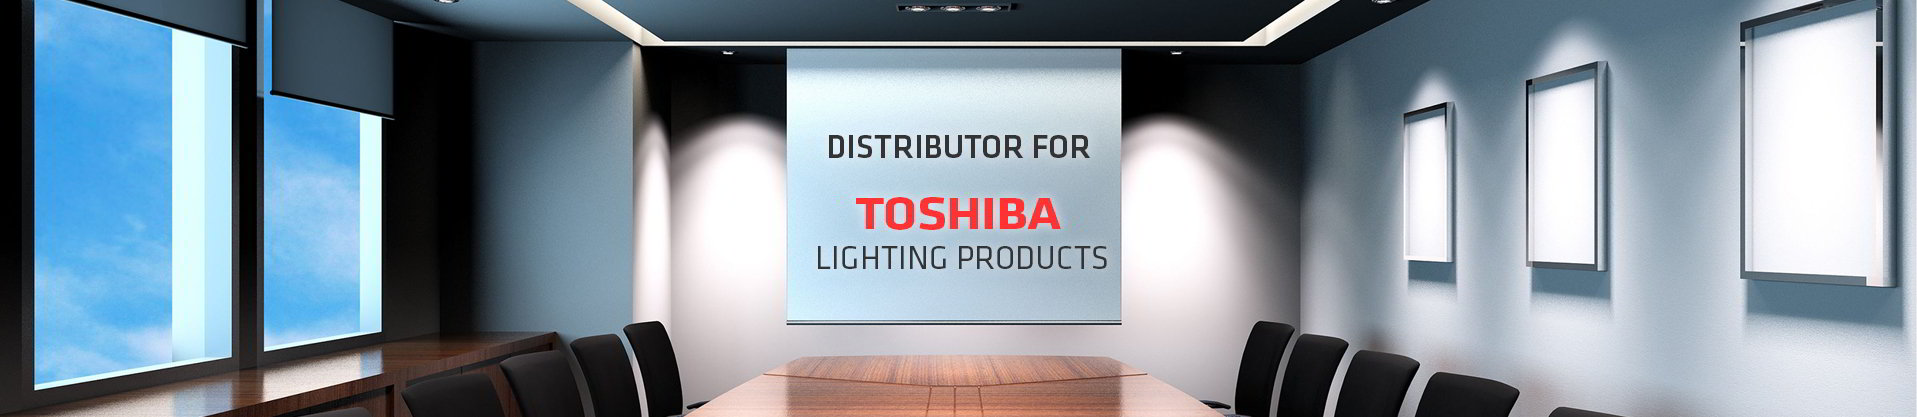 banner terra lighting toshiba lighting distributor